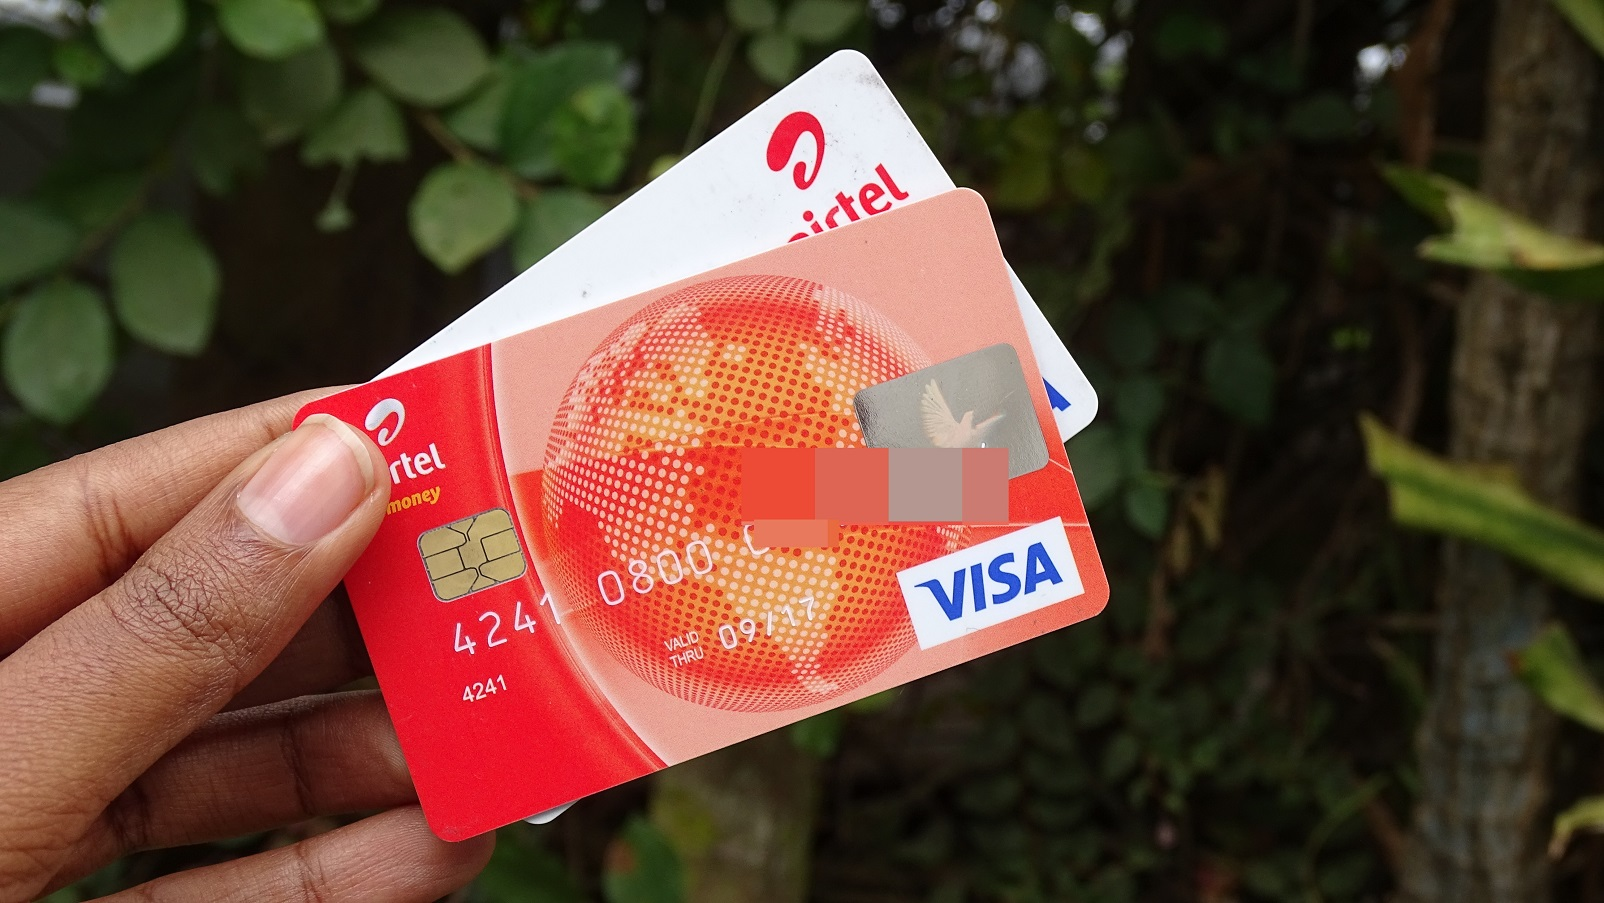 airtel money card comes back to life in kenya with emphasis on online payments - Visa Money Card